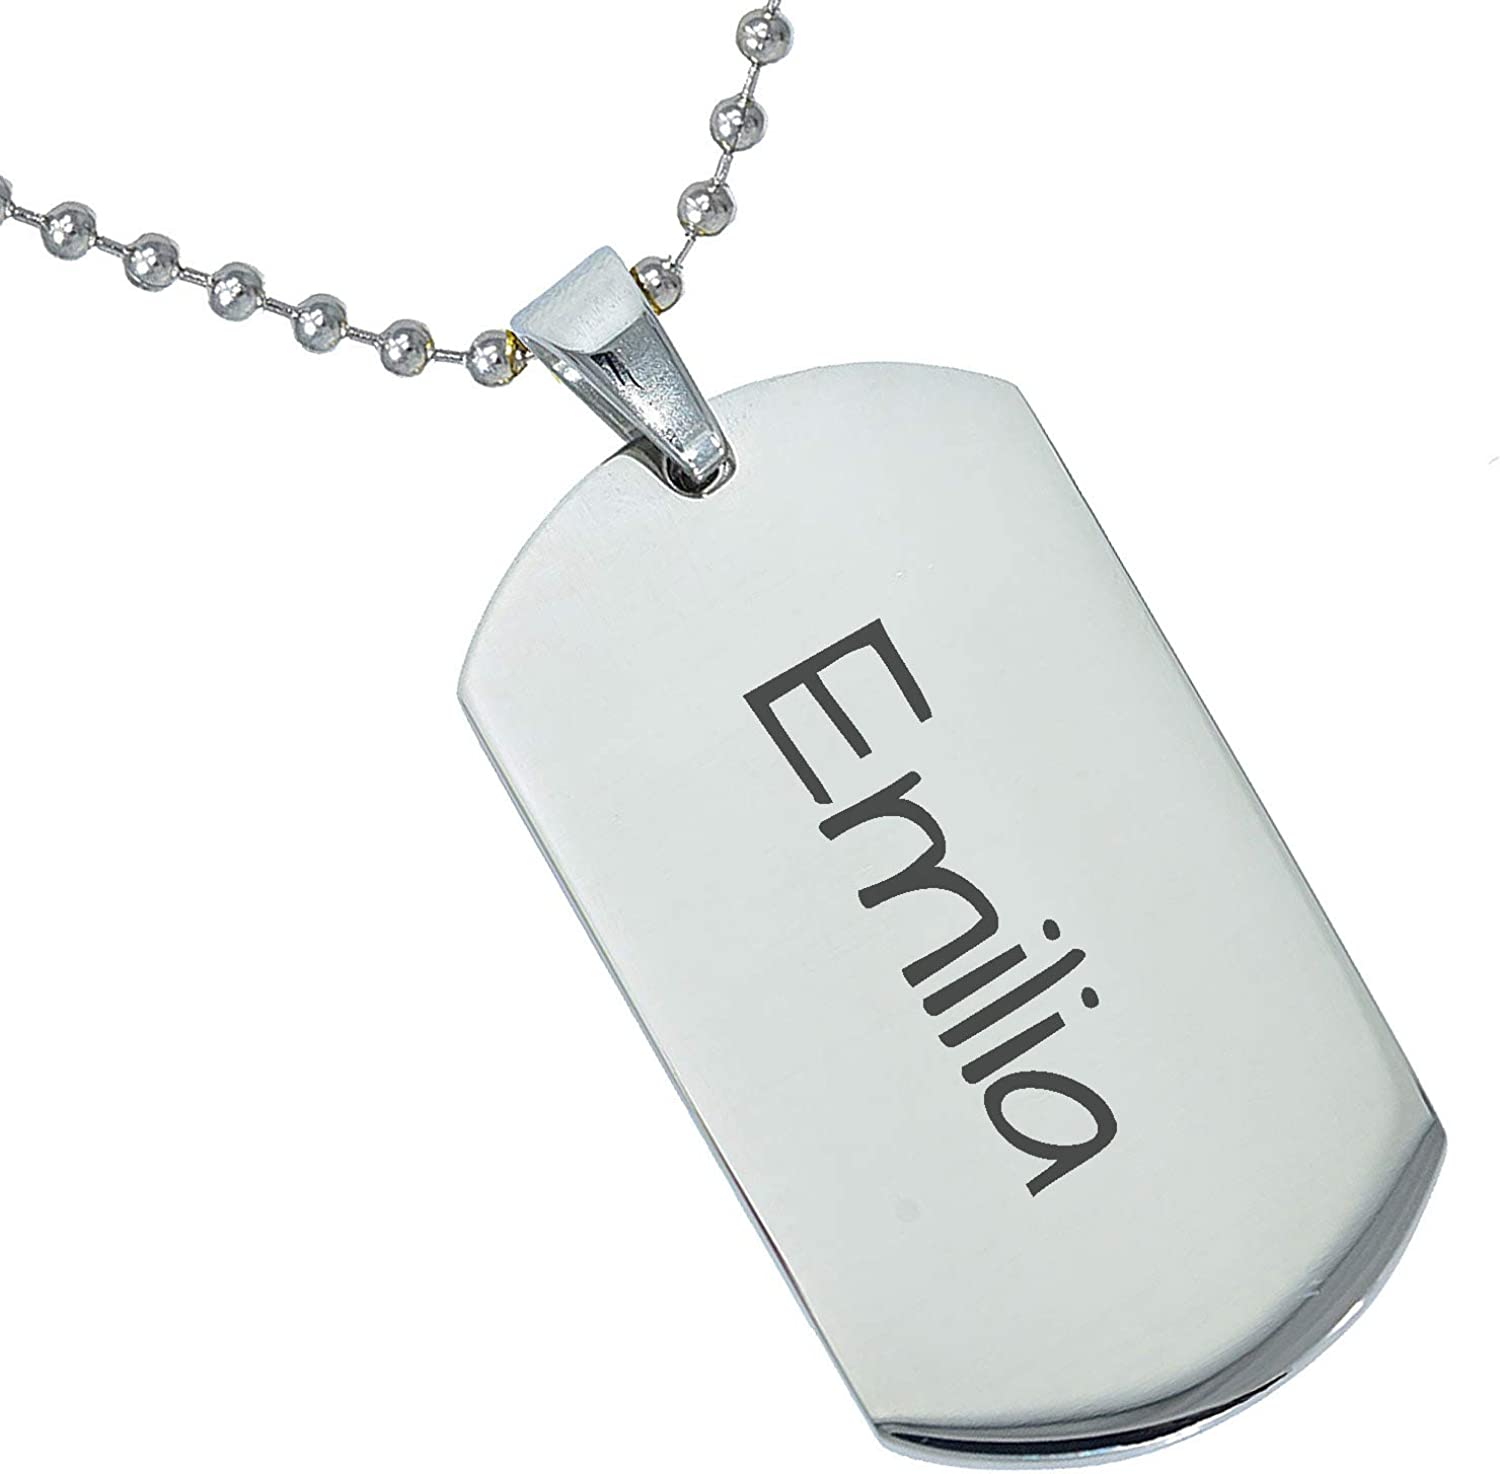 Stainless Steel Silver Gold Black Rose Gold Color Baby Name Emilia Engraved Personalized Gifts For Son Daughter Boyfriend Girlfriend Initial Customizable Pendant Necklace Dog Tags 24 Ball Chain